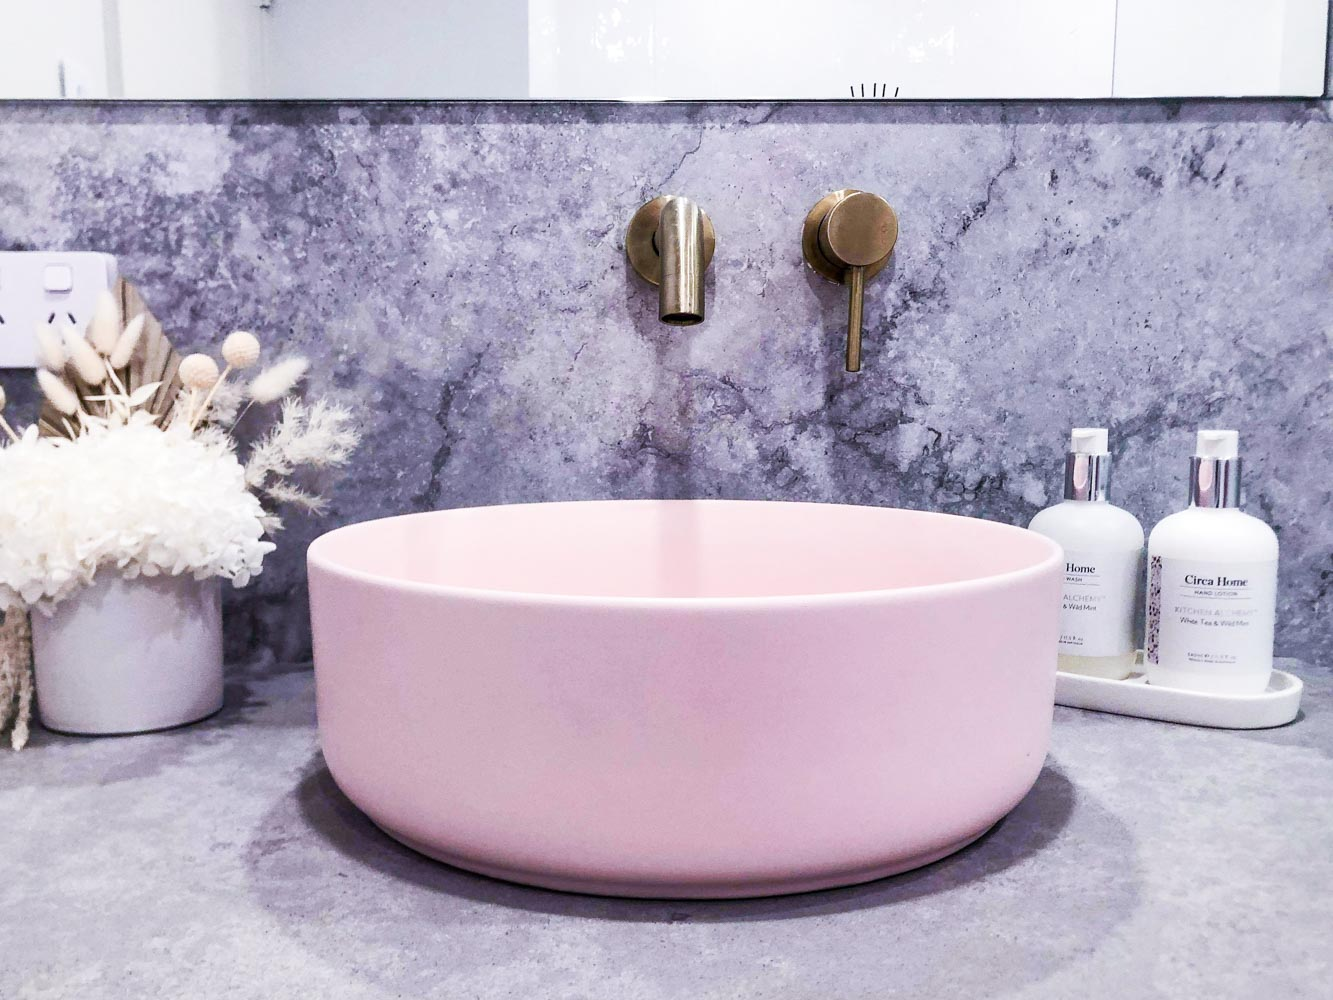 Passion Built Sydney Bathroom Renovation with Pink Matte Paco Ceramic Basin from Temple Webster